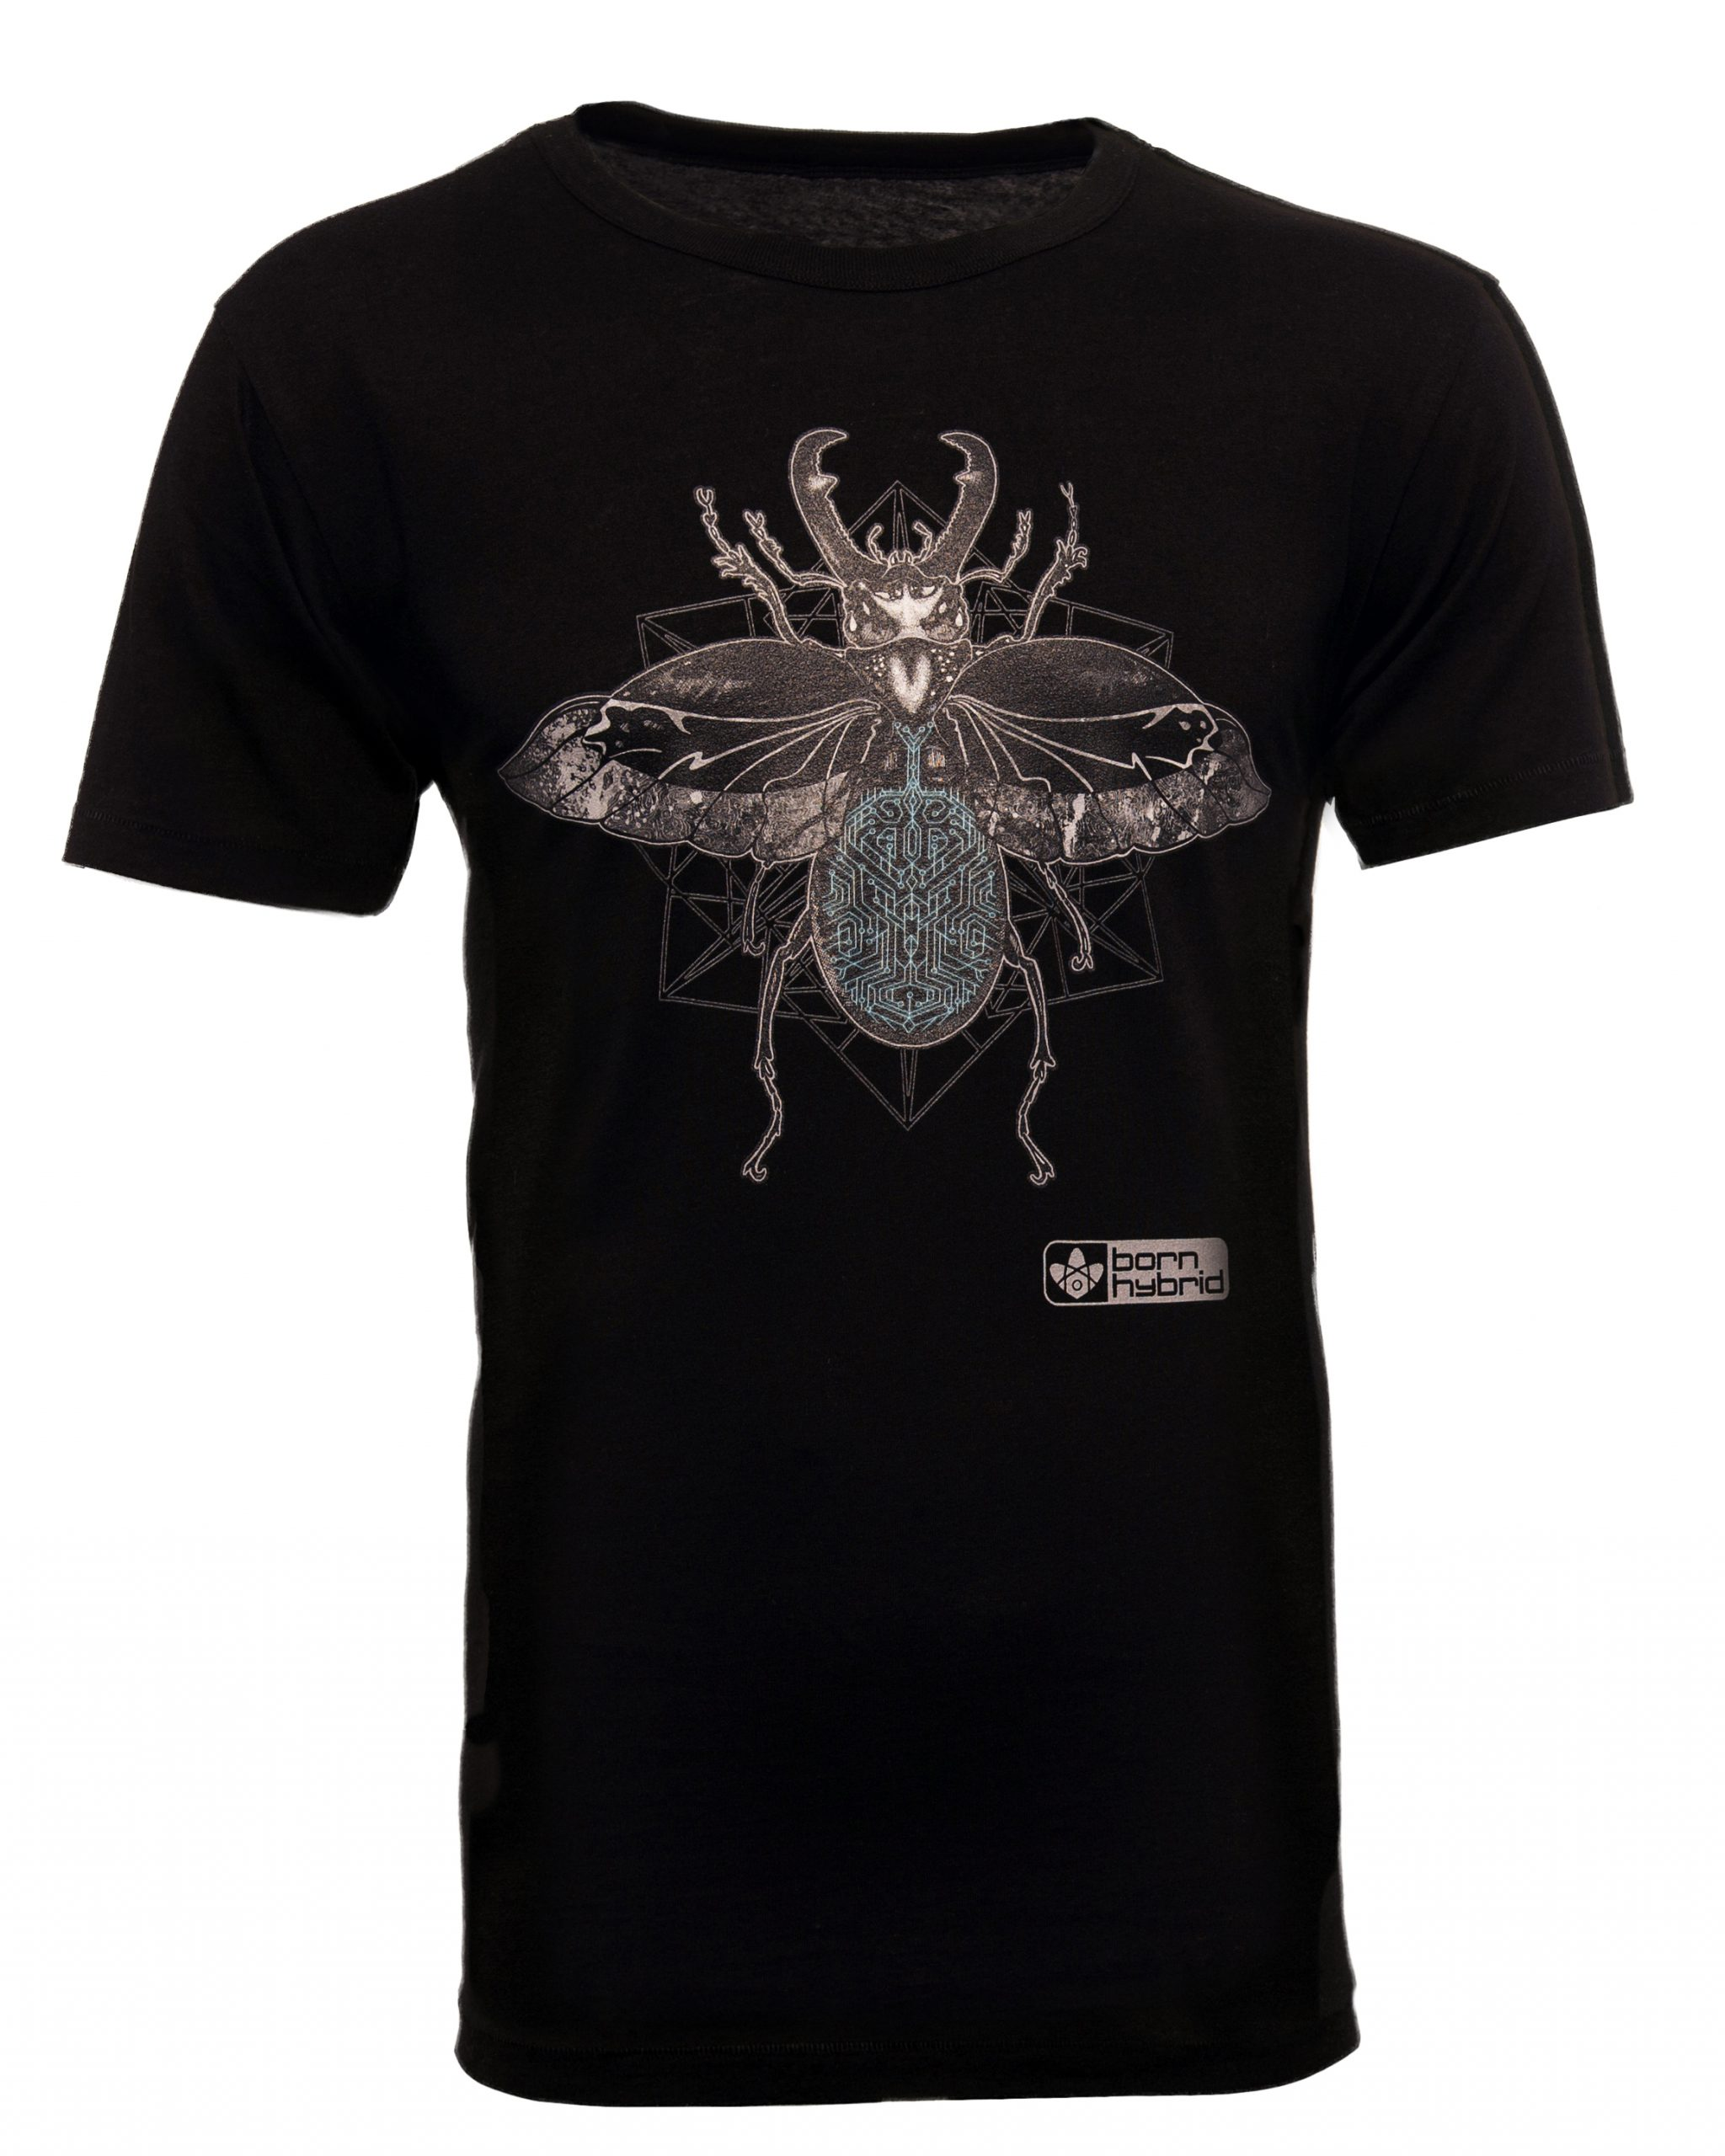 Black men's eco friendly stag beetle graphic t-shirt with a detailed design